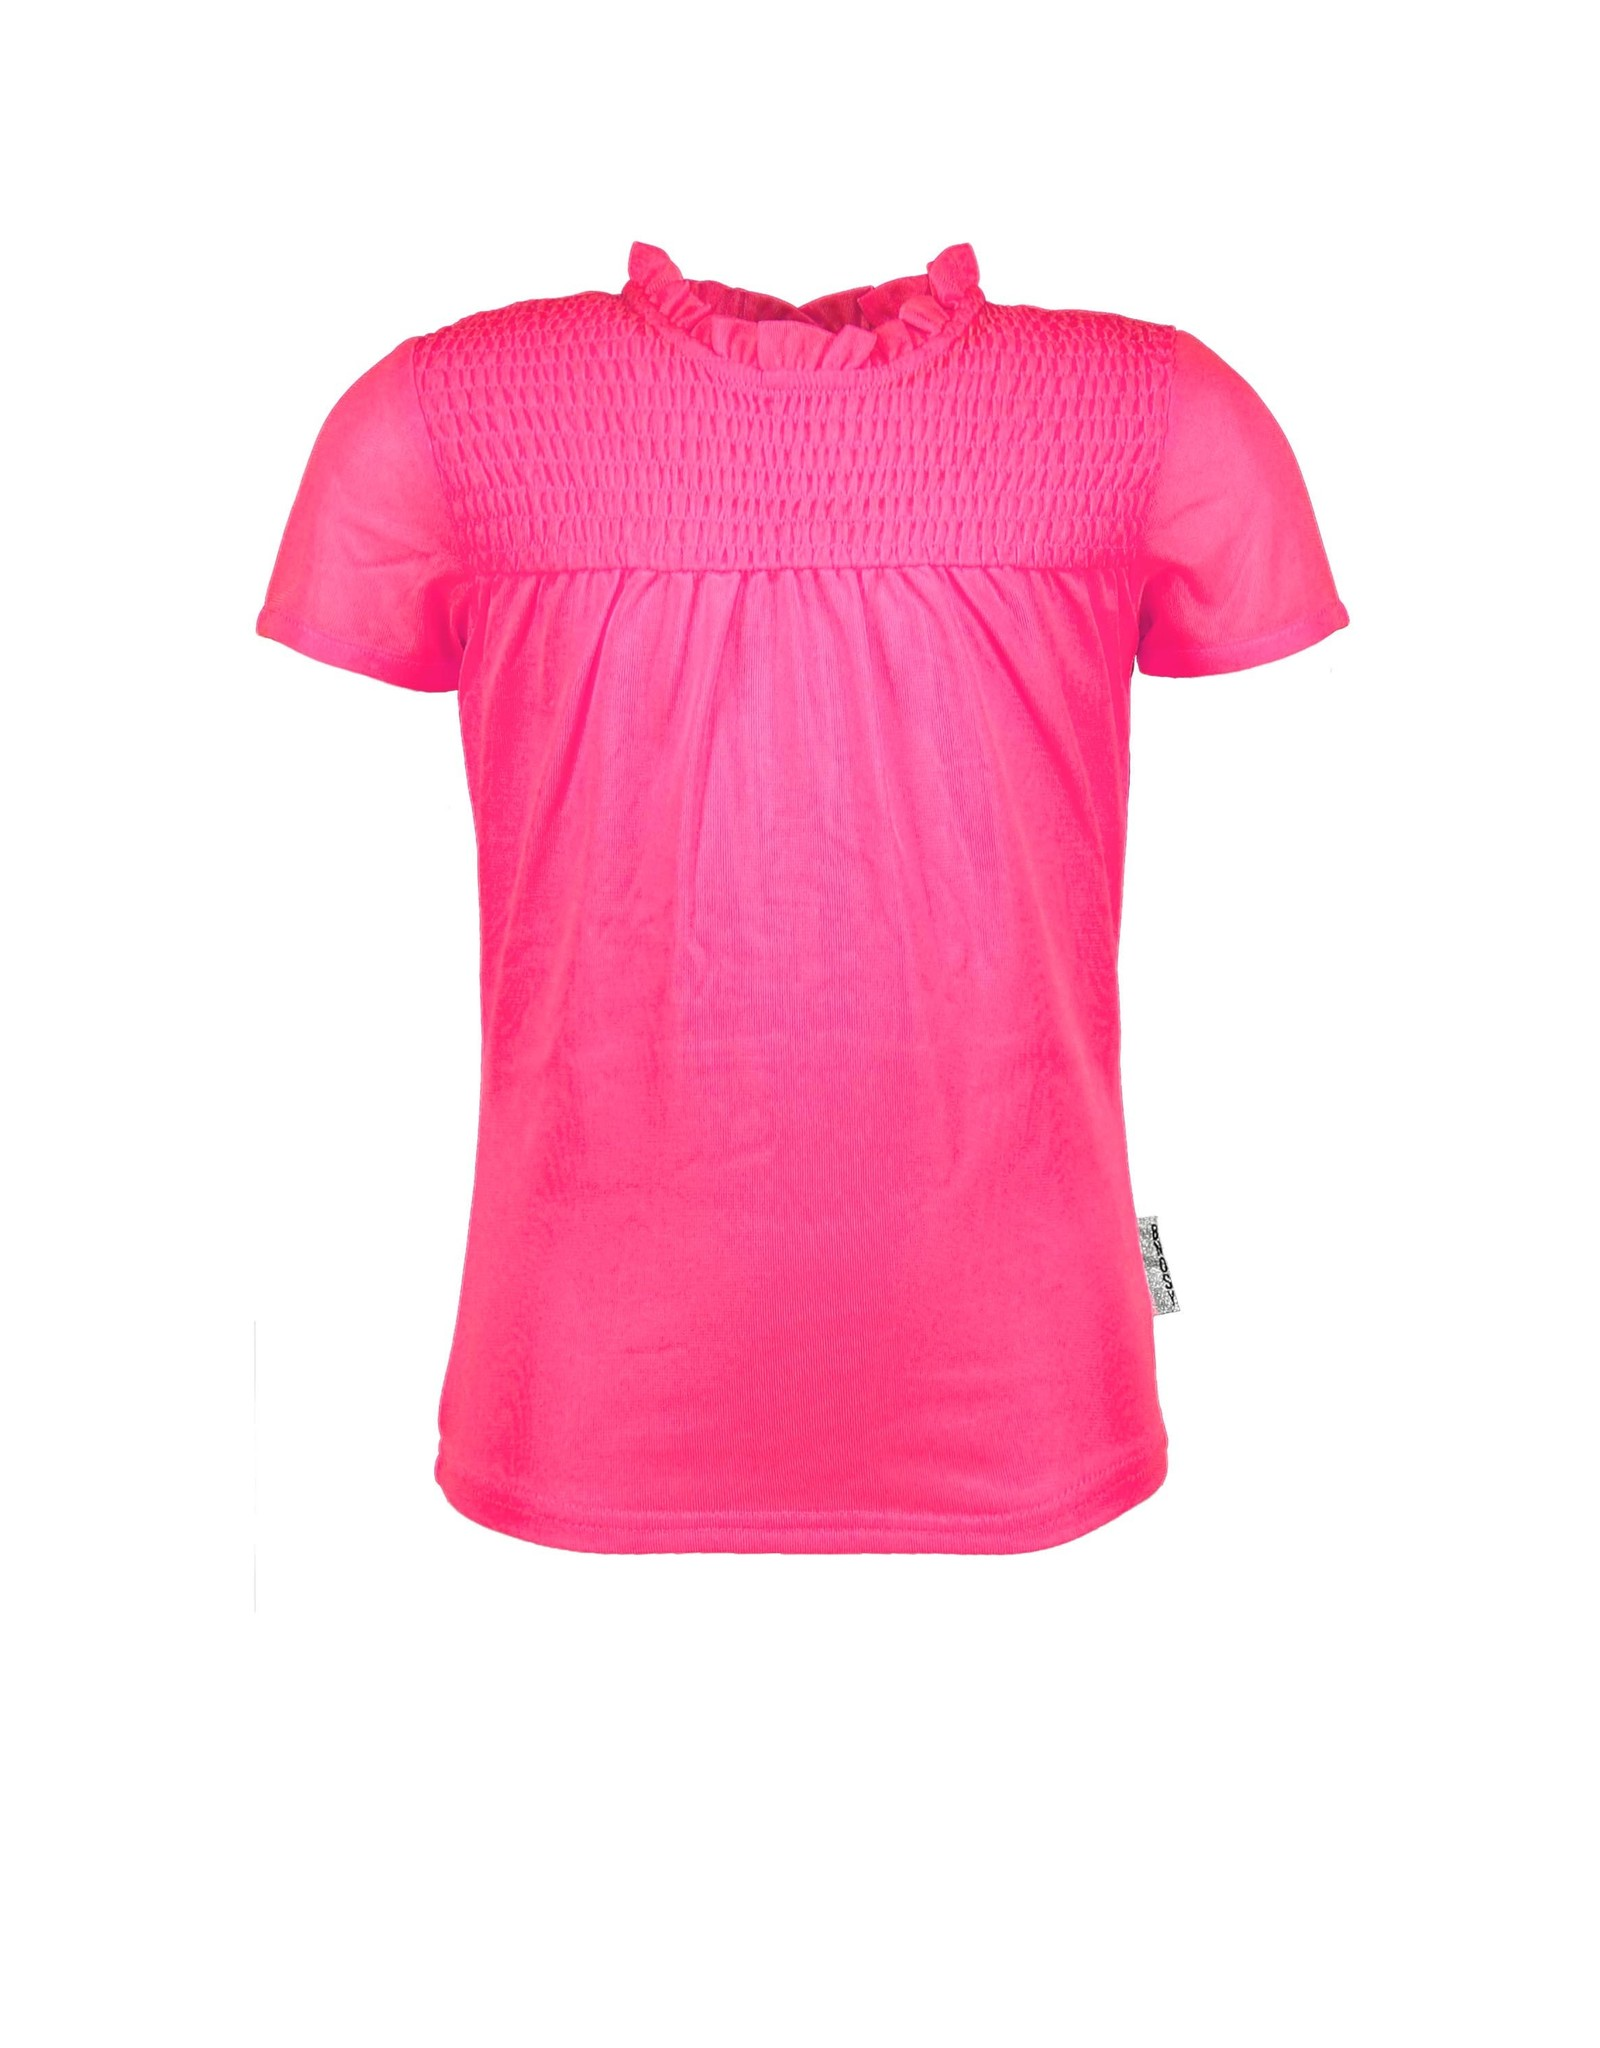 B-Nosy Girls ss polyester top with smock part / front lining, Knock out pink